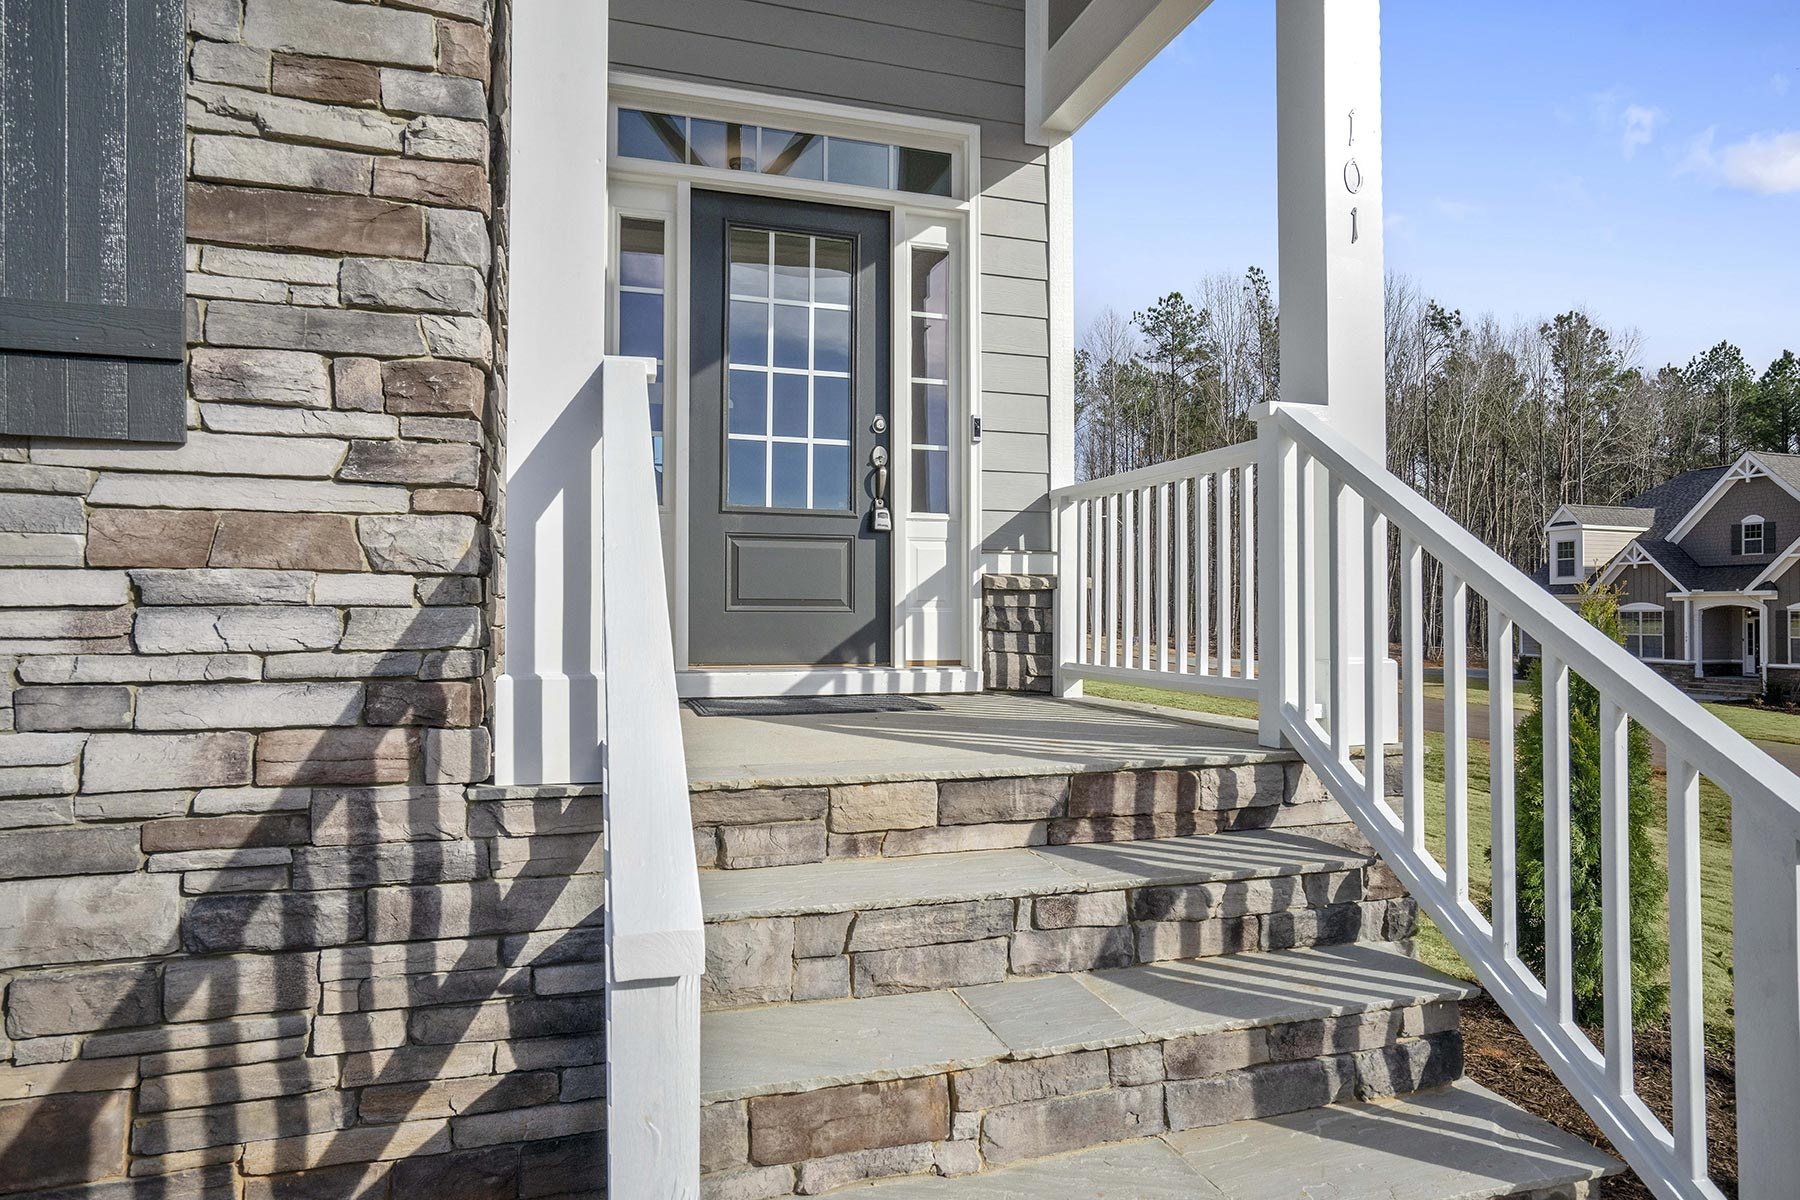 Juniper Plan Front Porch at Ballentine Place in Holly Springs North Carolina by Mattamy Homes